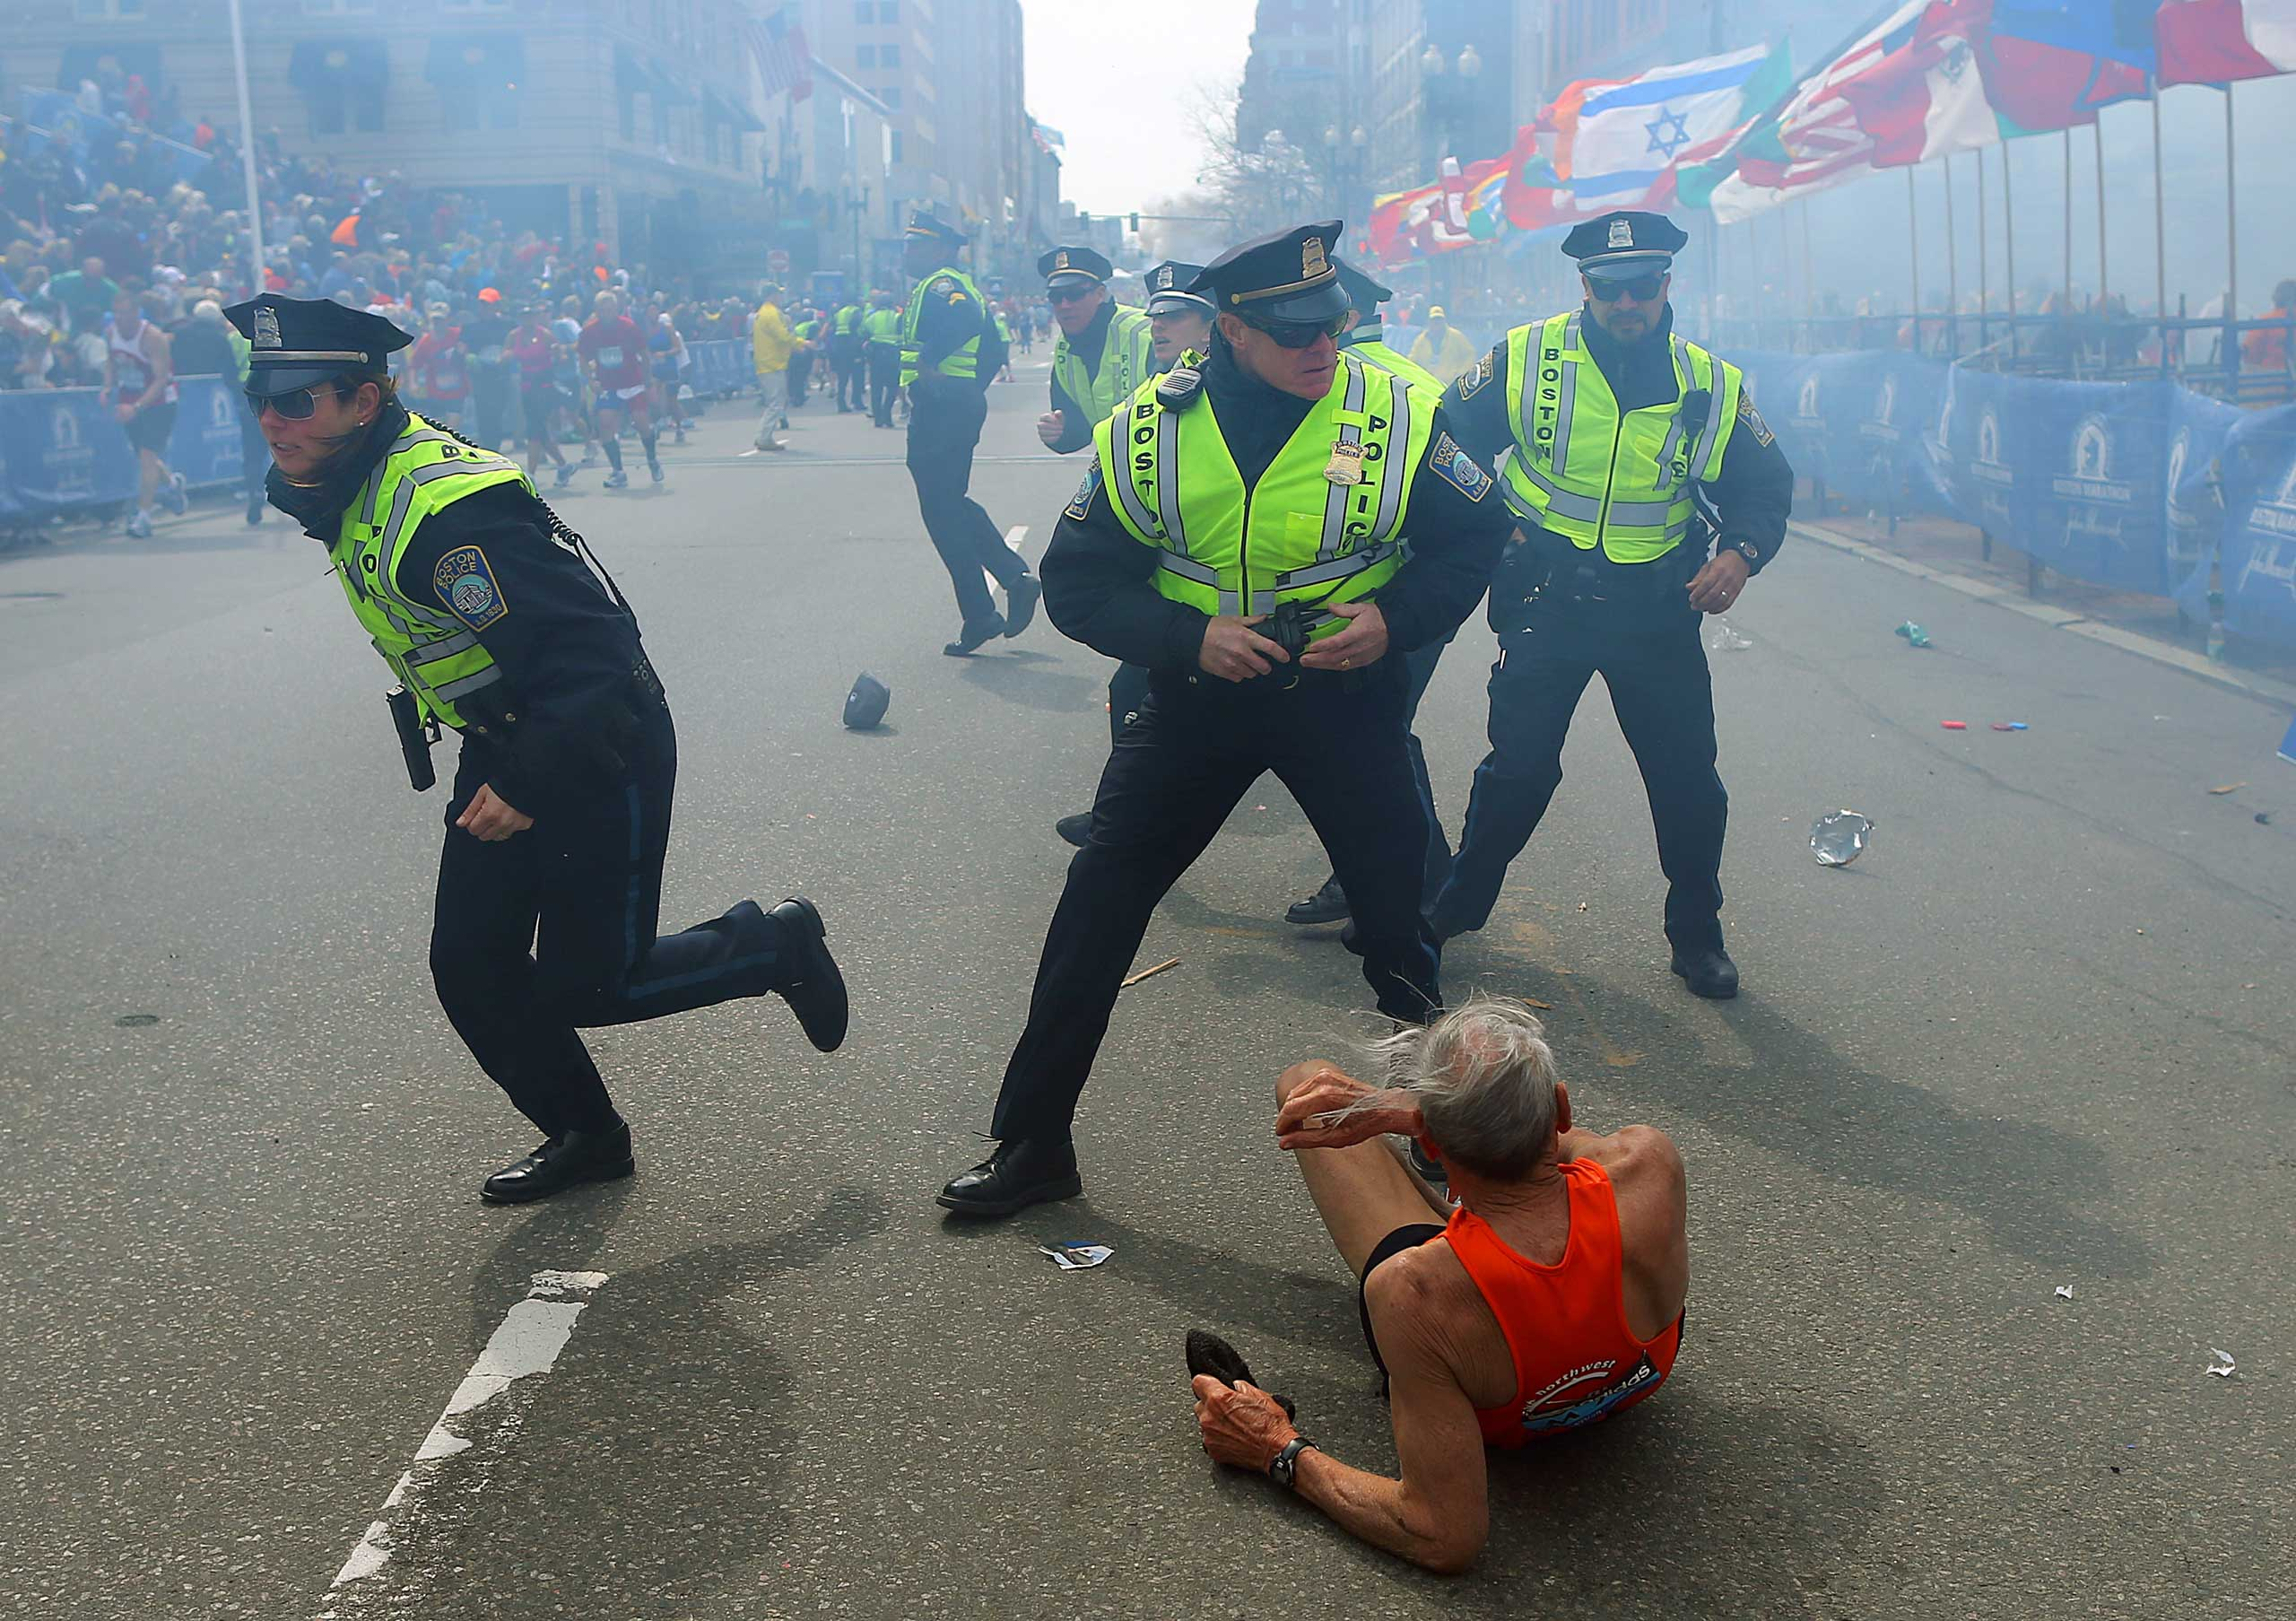 April 15, 2013. Boston police officers react to a second explosion near the finish line of the 117th Boston Marathon.